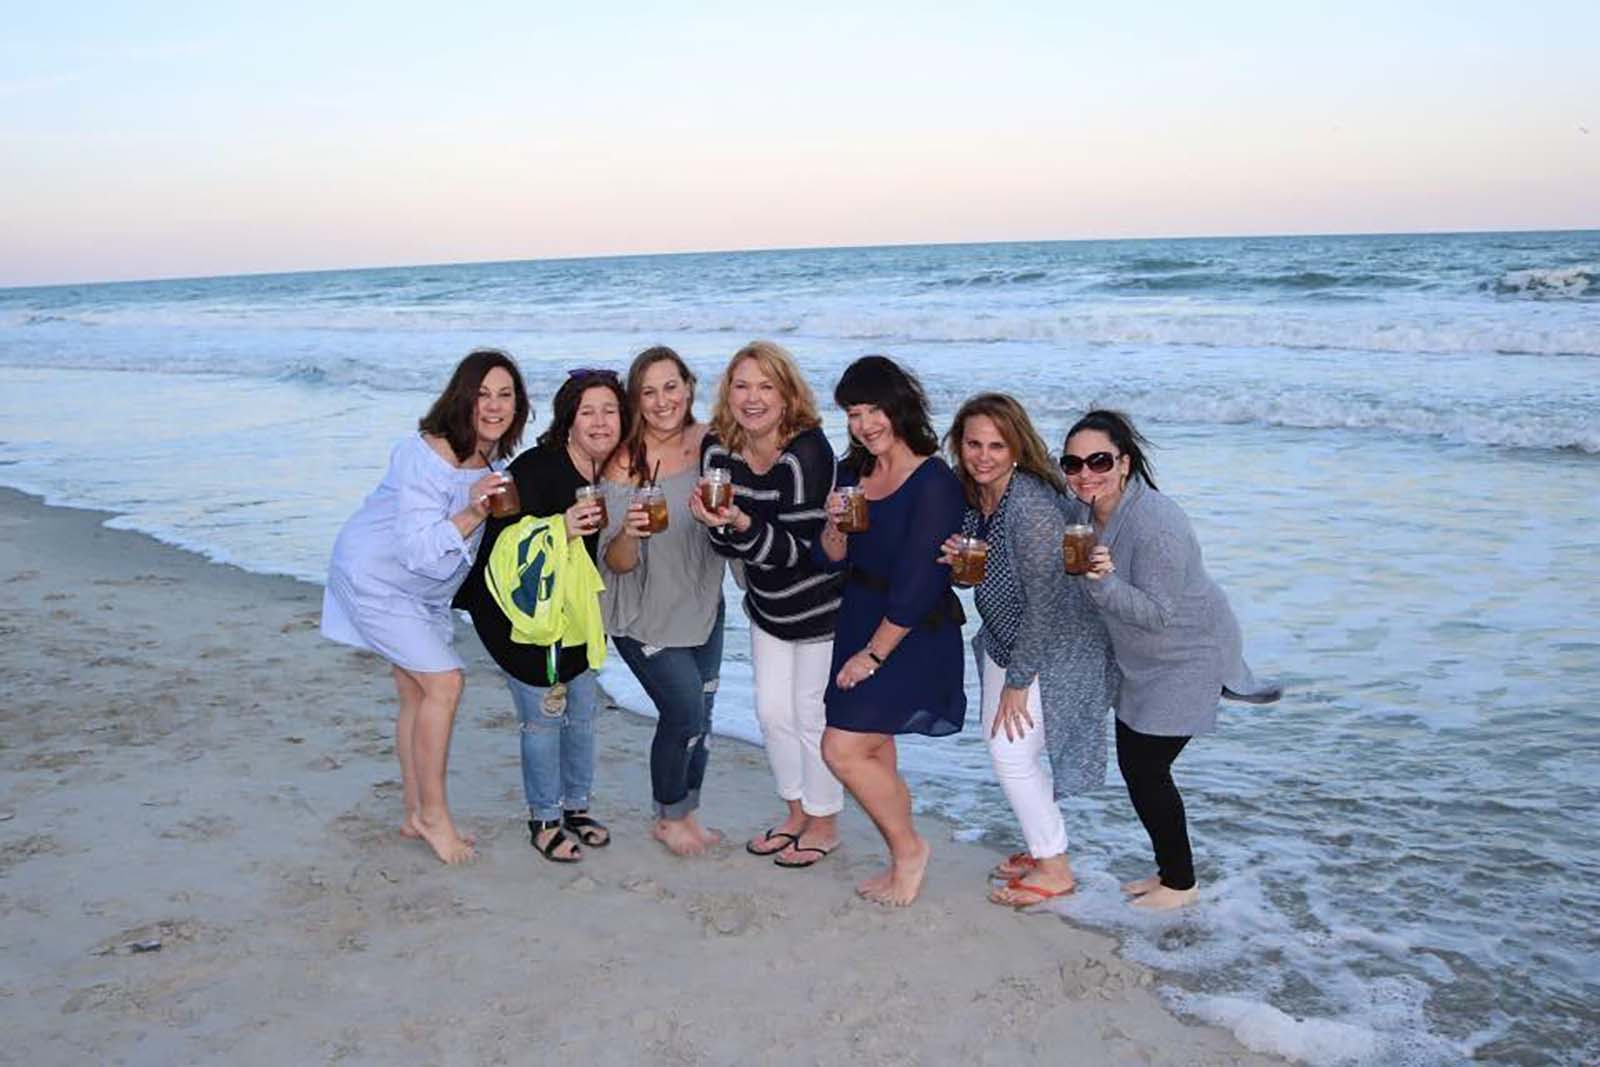 Group of girls in ocean with drinks